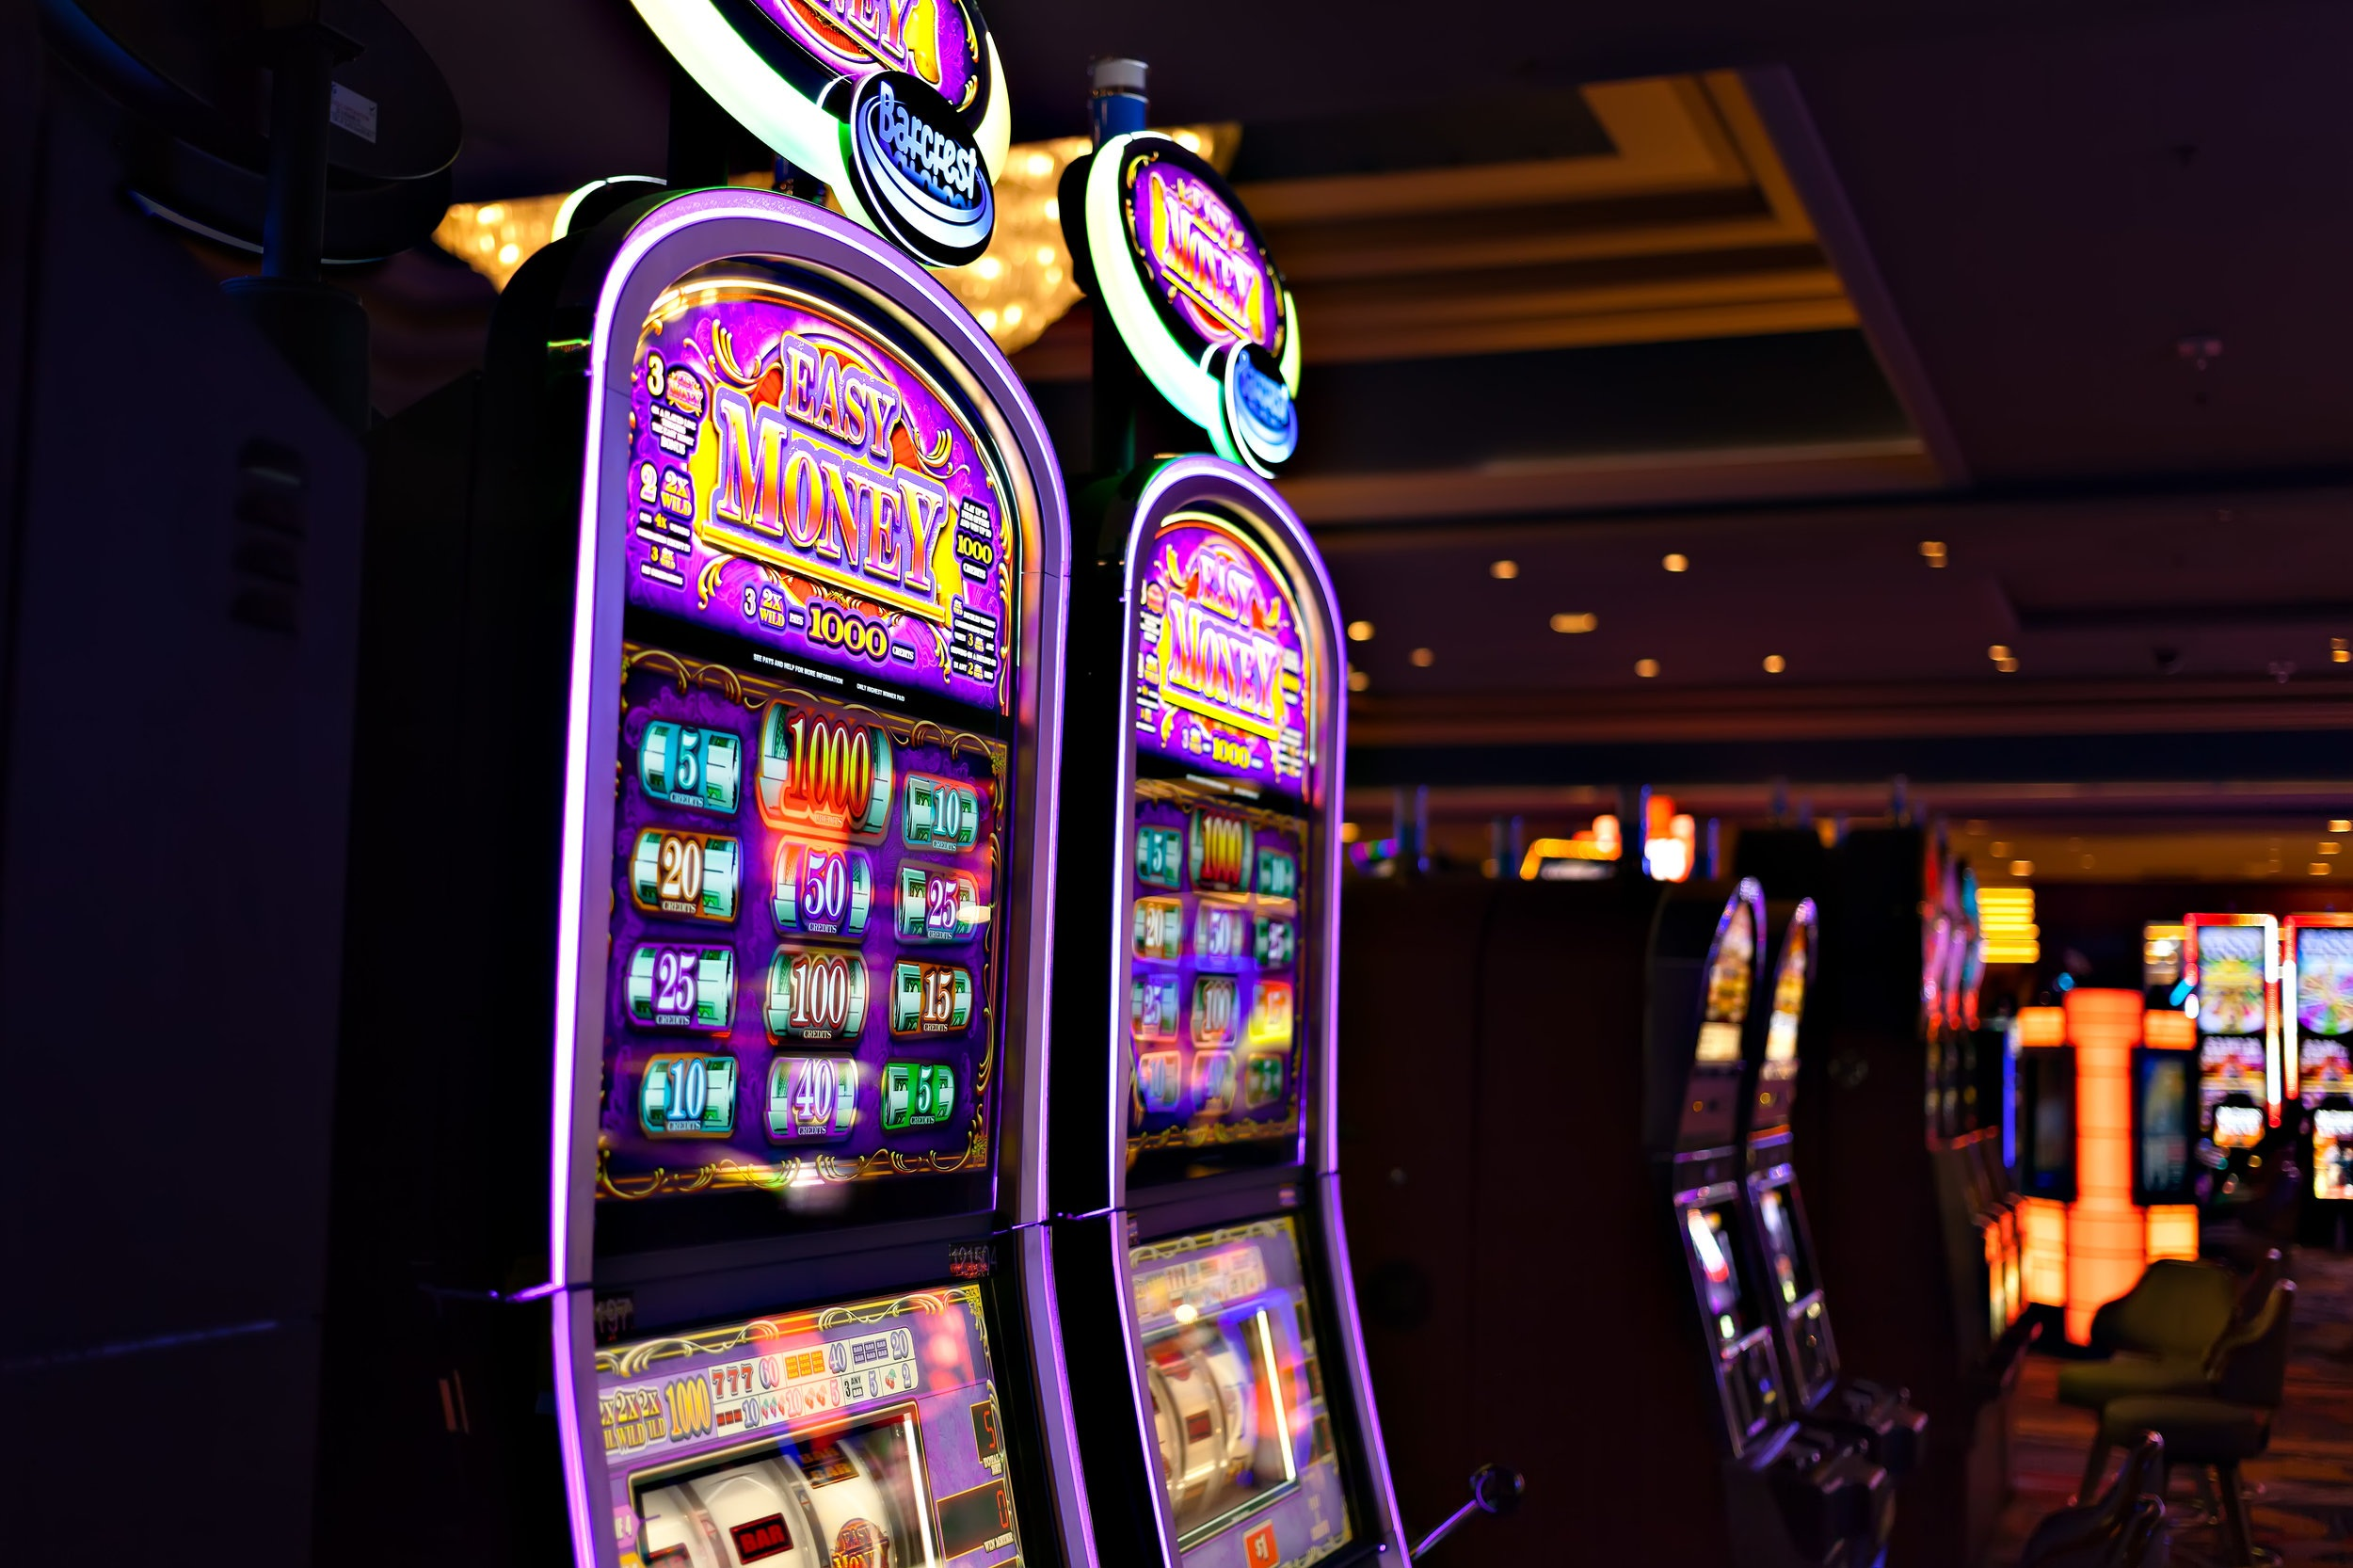 rESPONSIBLE GAMING - Full House Resorts and Stockman's Casino are committed to providing support and promoting awareness of gambling disorders.